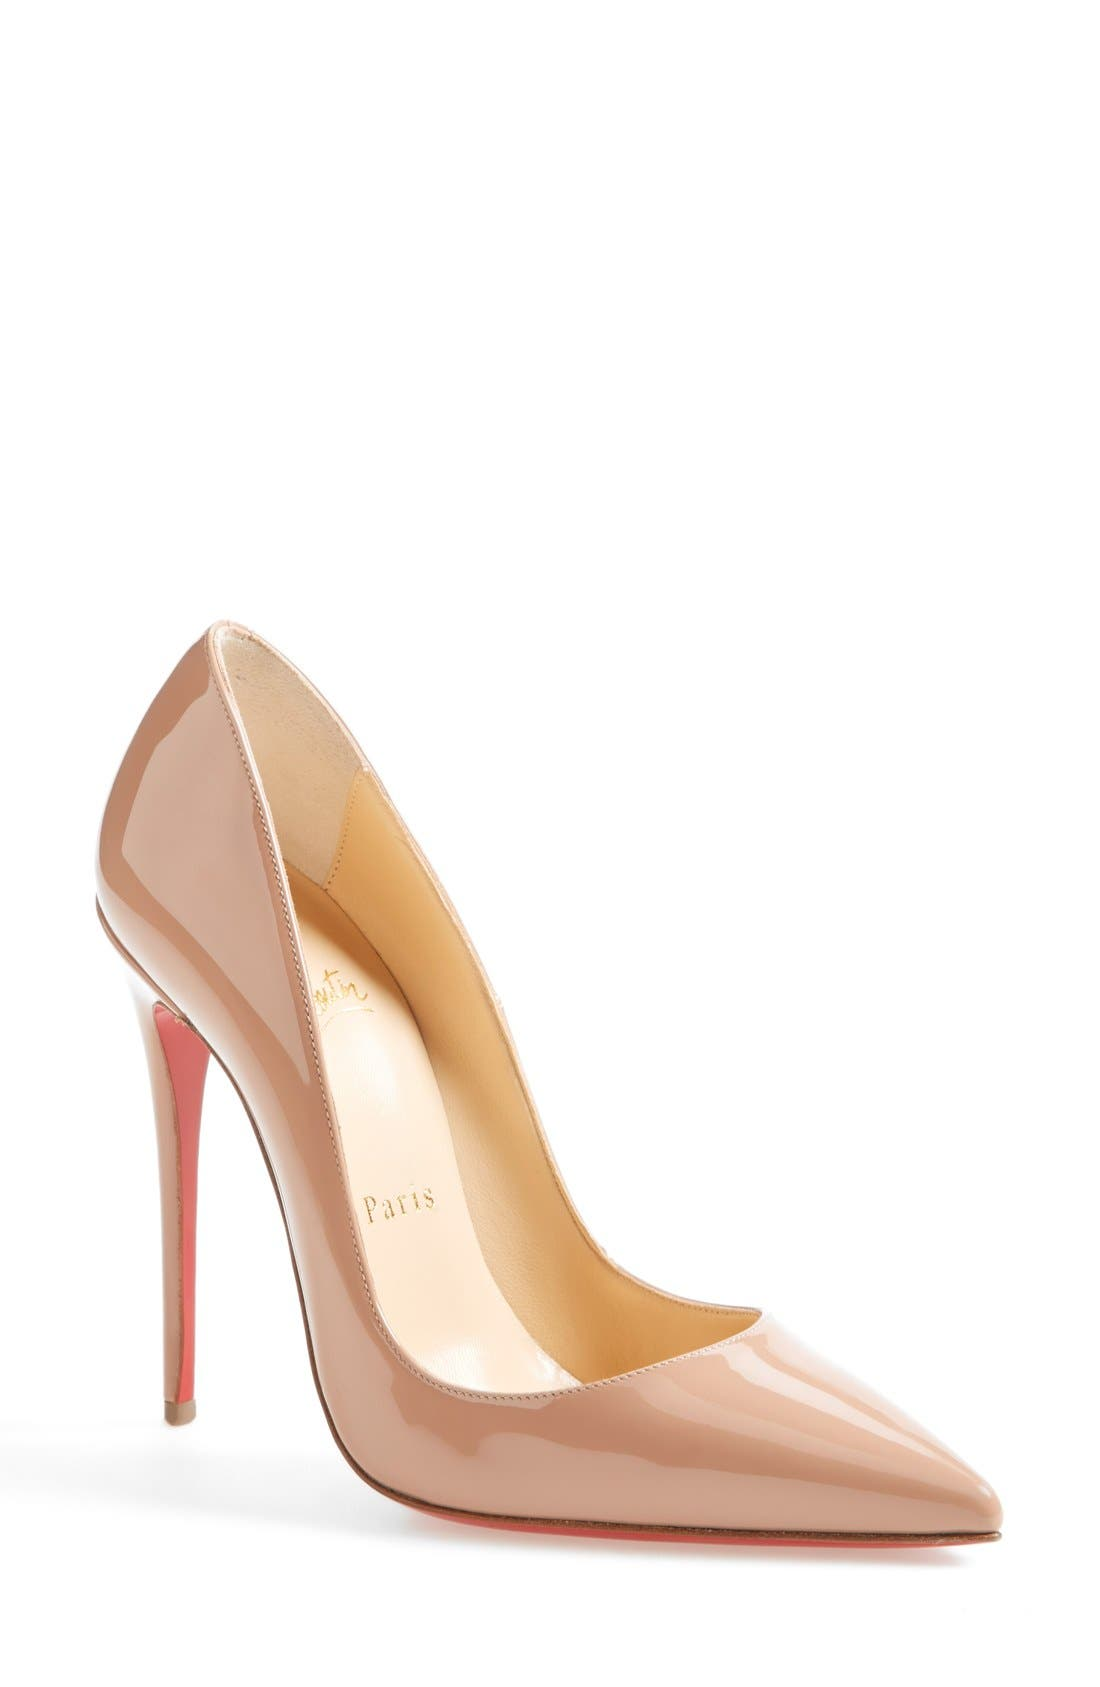 Christian Louboutin Women's So Kate Genuine Calf Hair Pump YoiIg